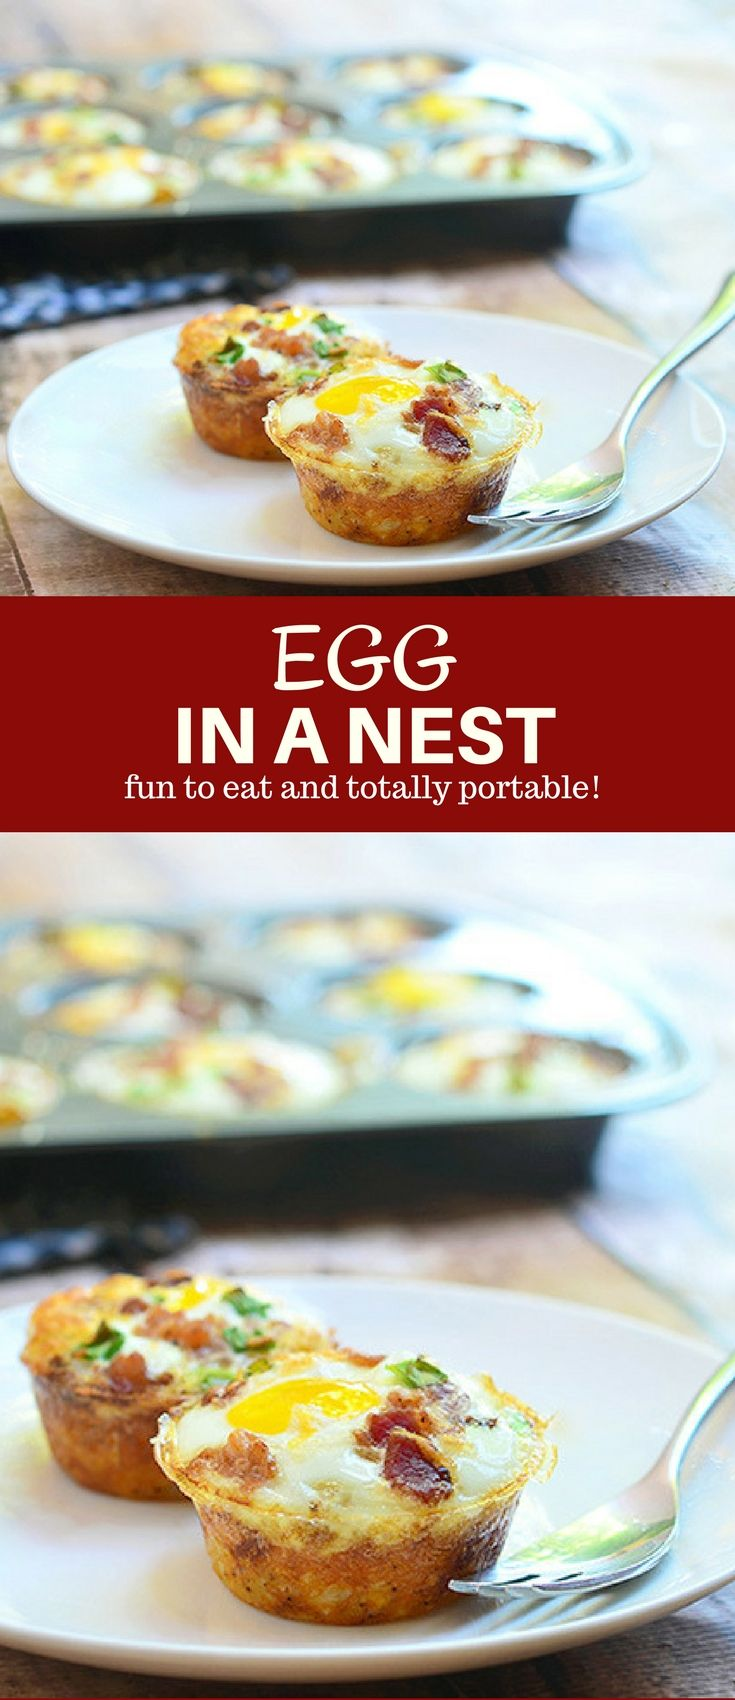 Egg in a Nest with soft yolks, crisp bacon, cheese, and green onions baked in hash brown potato nests. They're a delicious breakfast treat and totally portable for snacking on the go. #breakfast #eggs #hashbrown #potatoes